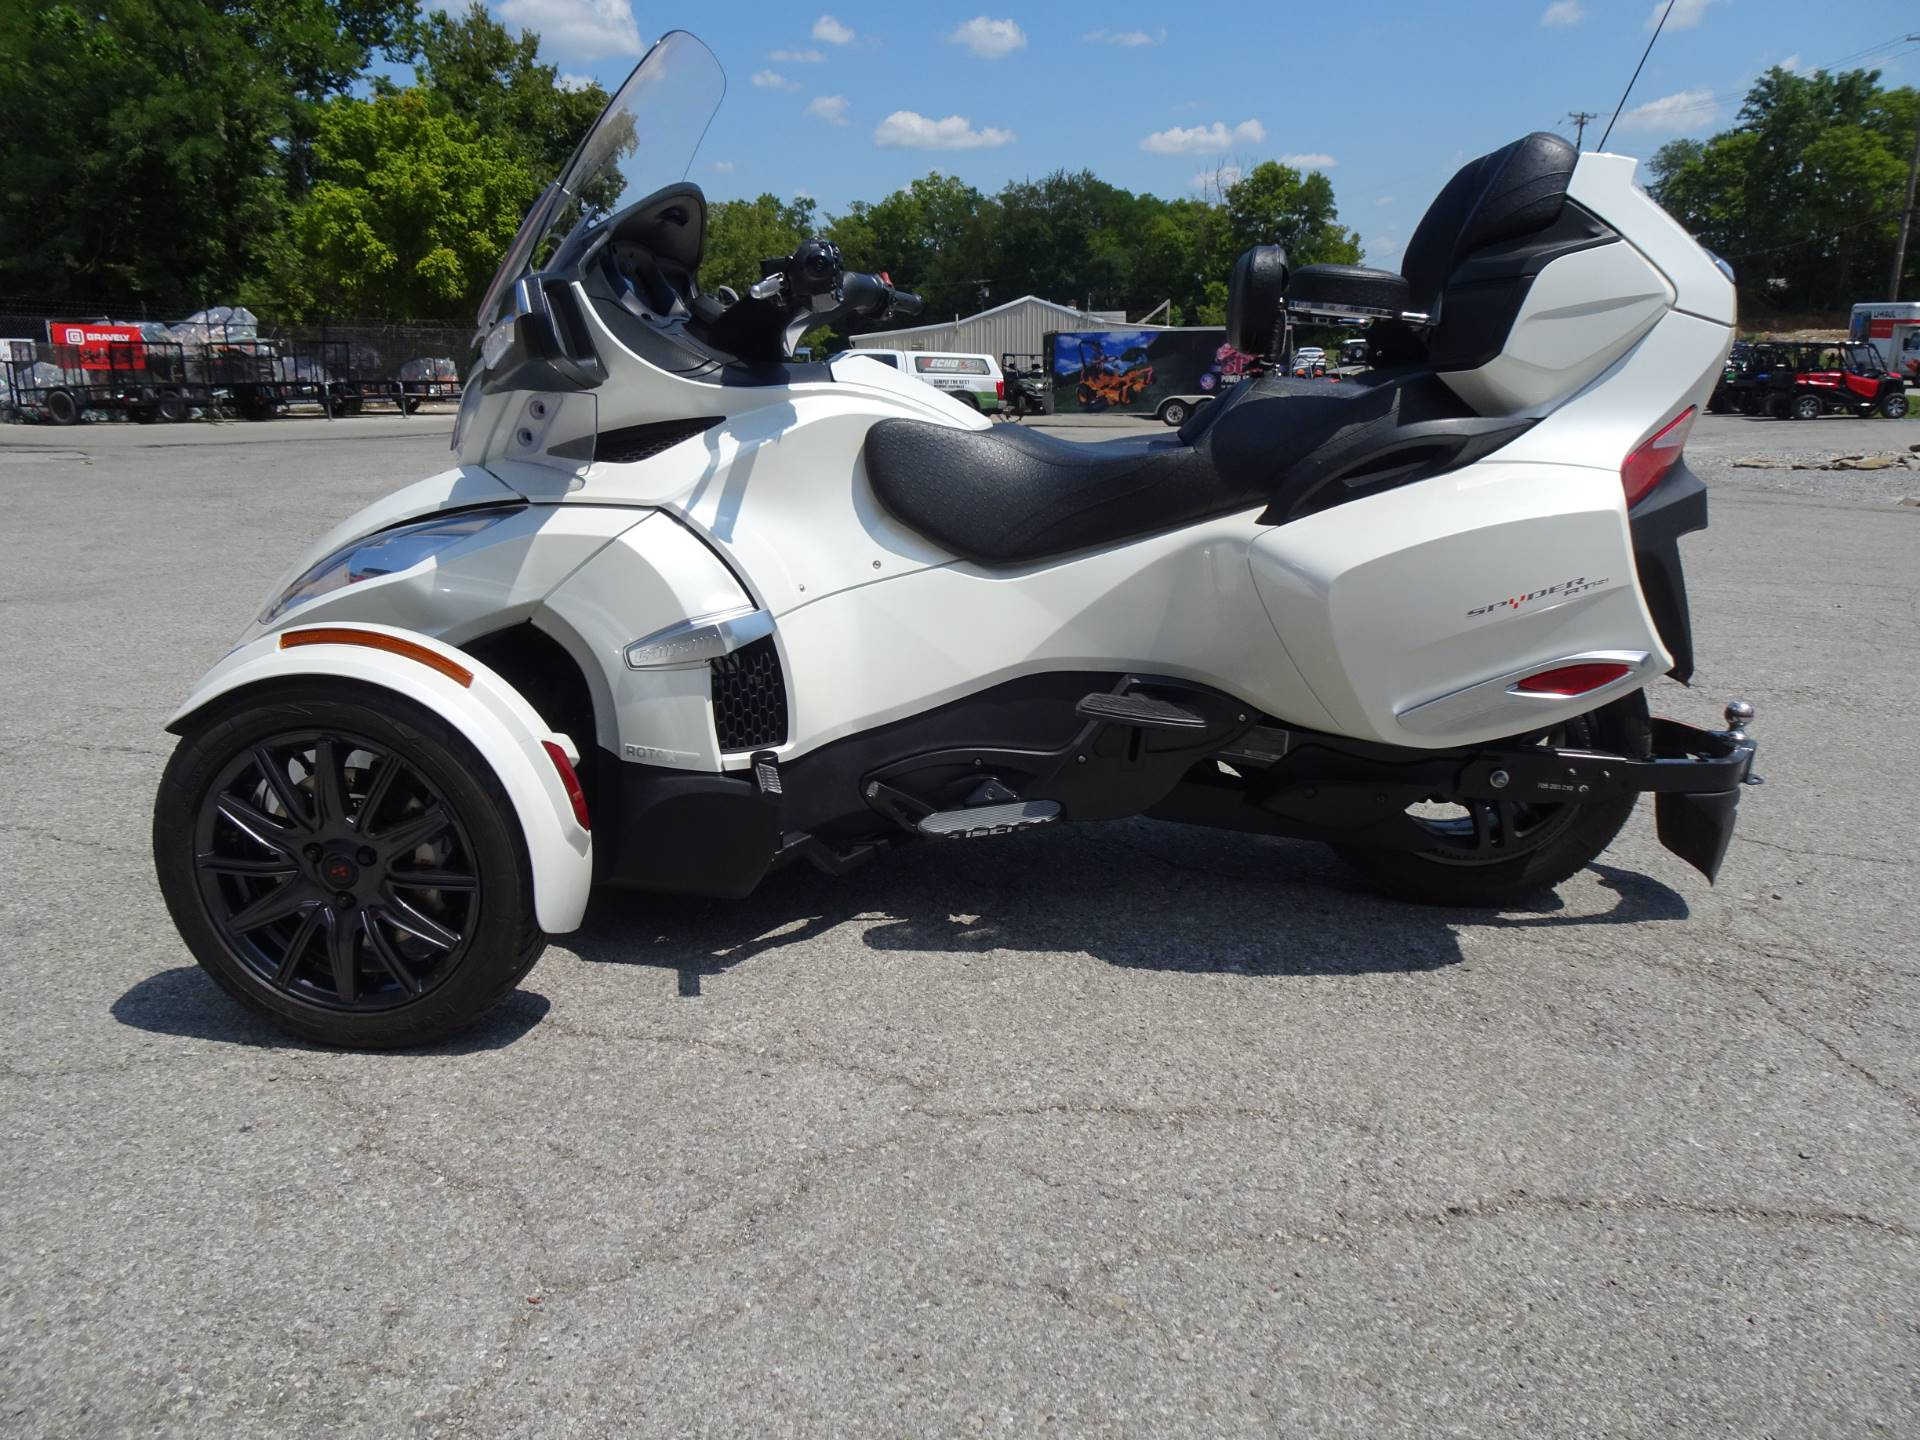 2014 Can-Am Spyder® RT-S SM6 in Georgetown, Kentucky - Photo 5